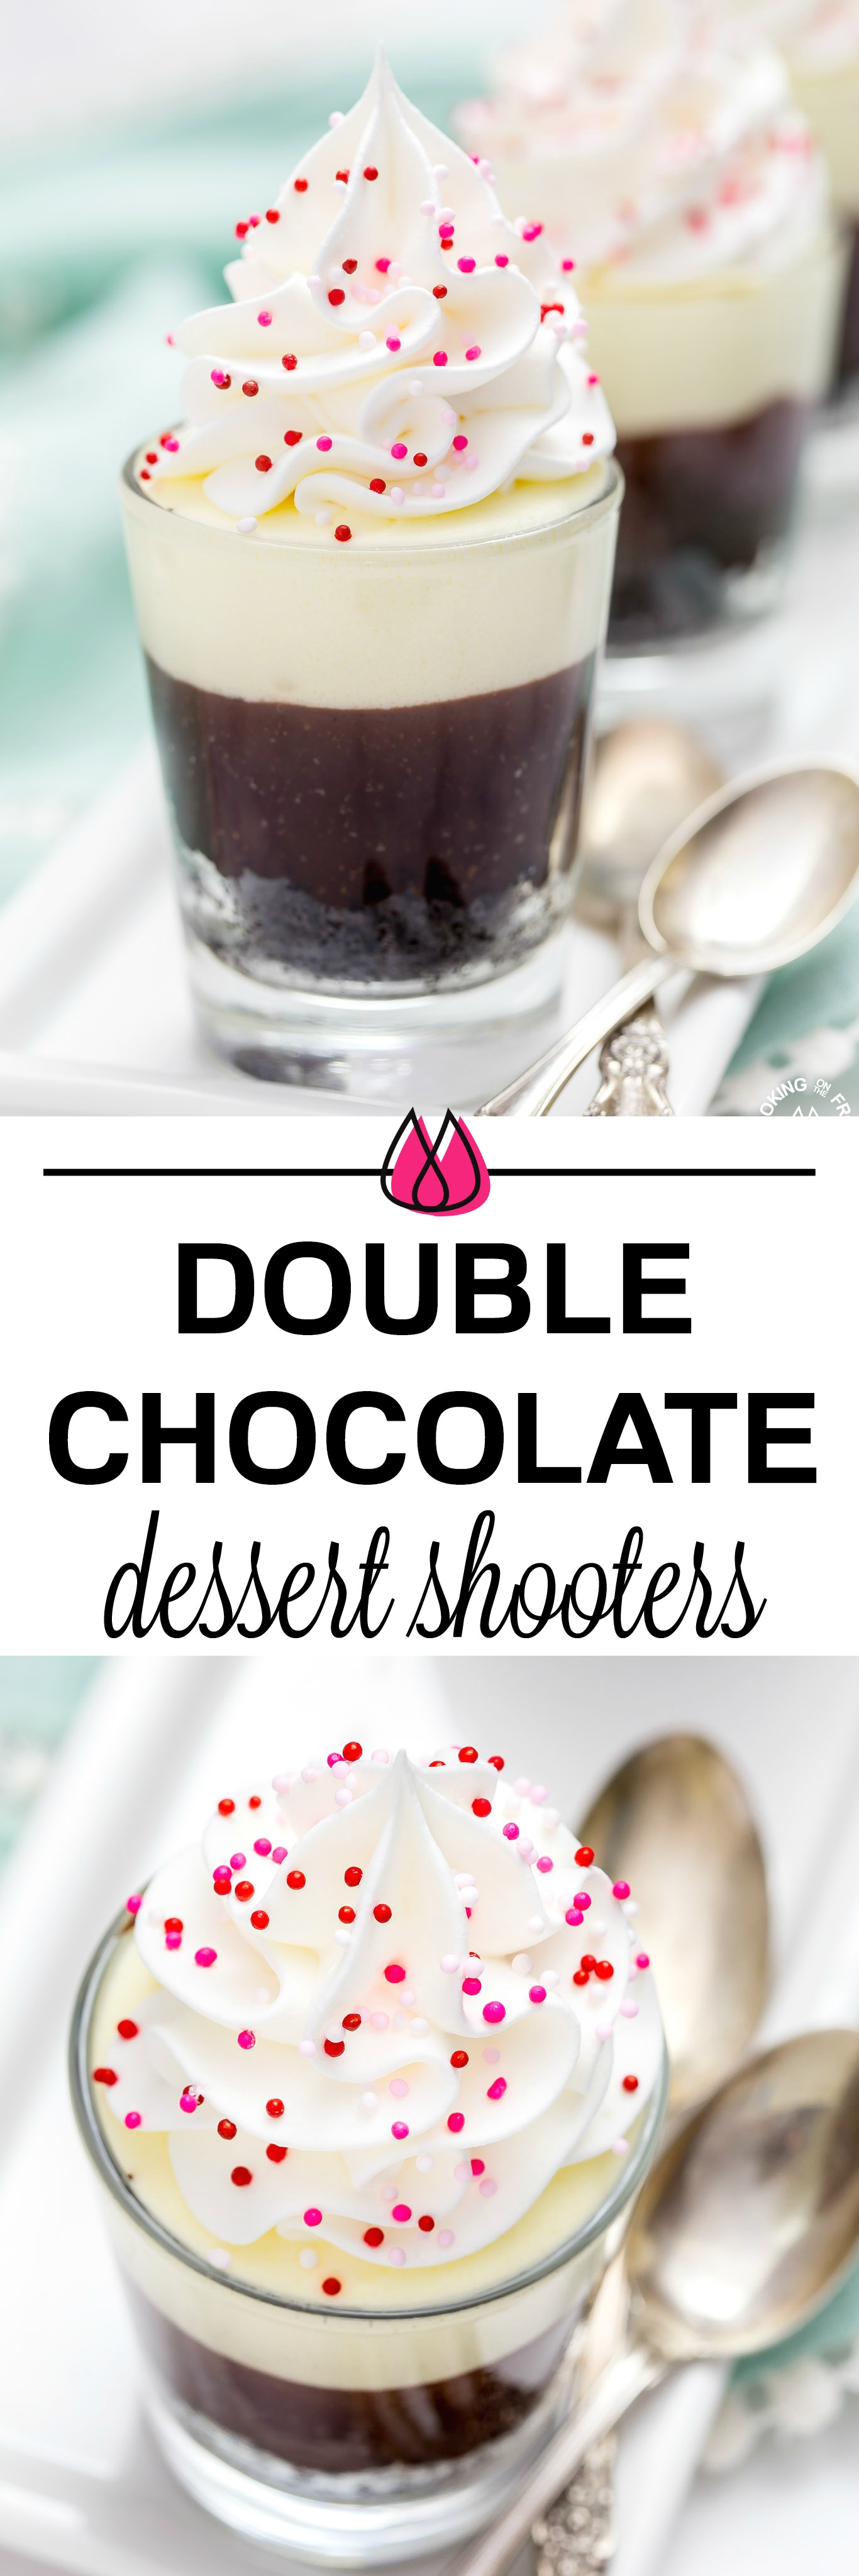 These no-bake Double Chocolate Mousse Shooters make the perfect mini dessert.  They have an chocolate crumb crust, a dark chocolate truffle layer then topped with a creamy white chocolate mousse.  You can even have more than one, I'll never tell! #chocolate #shooters #mousse